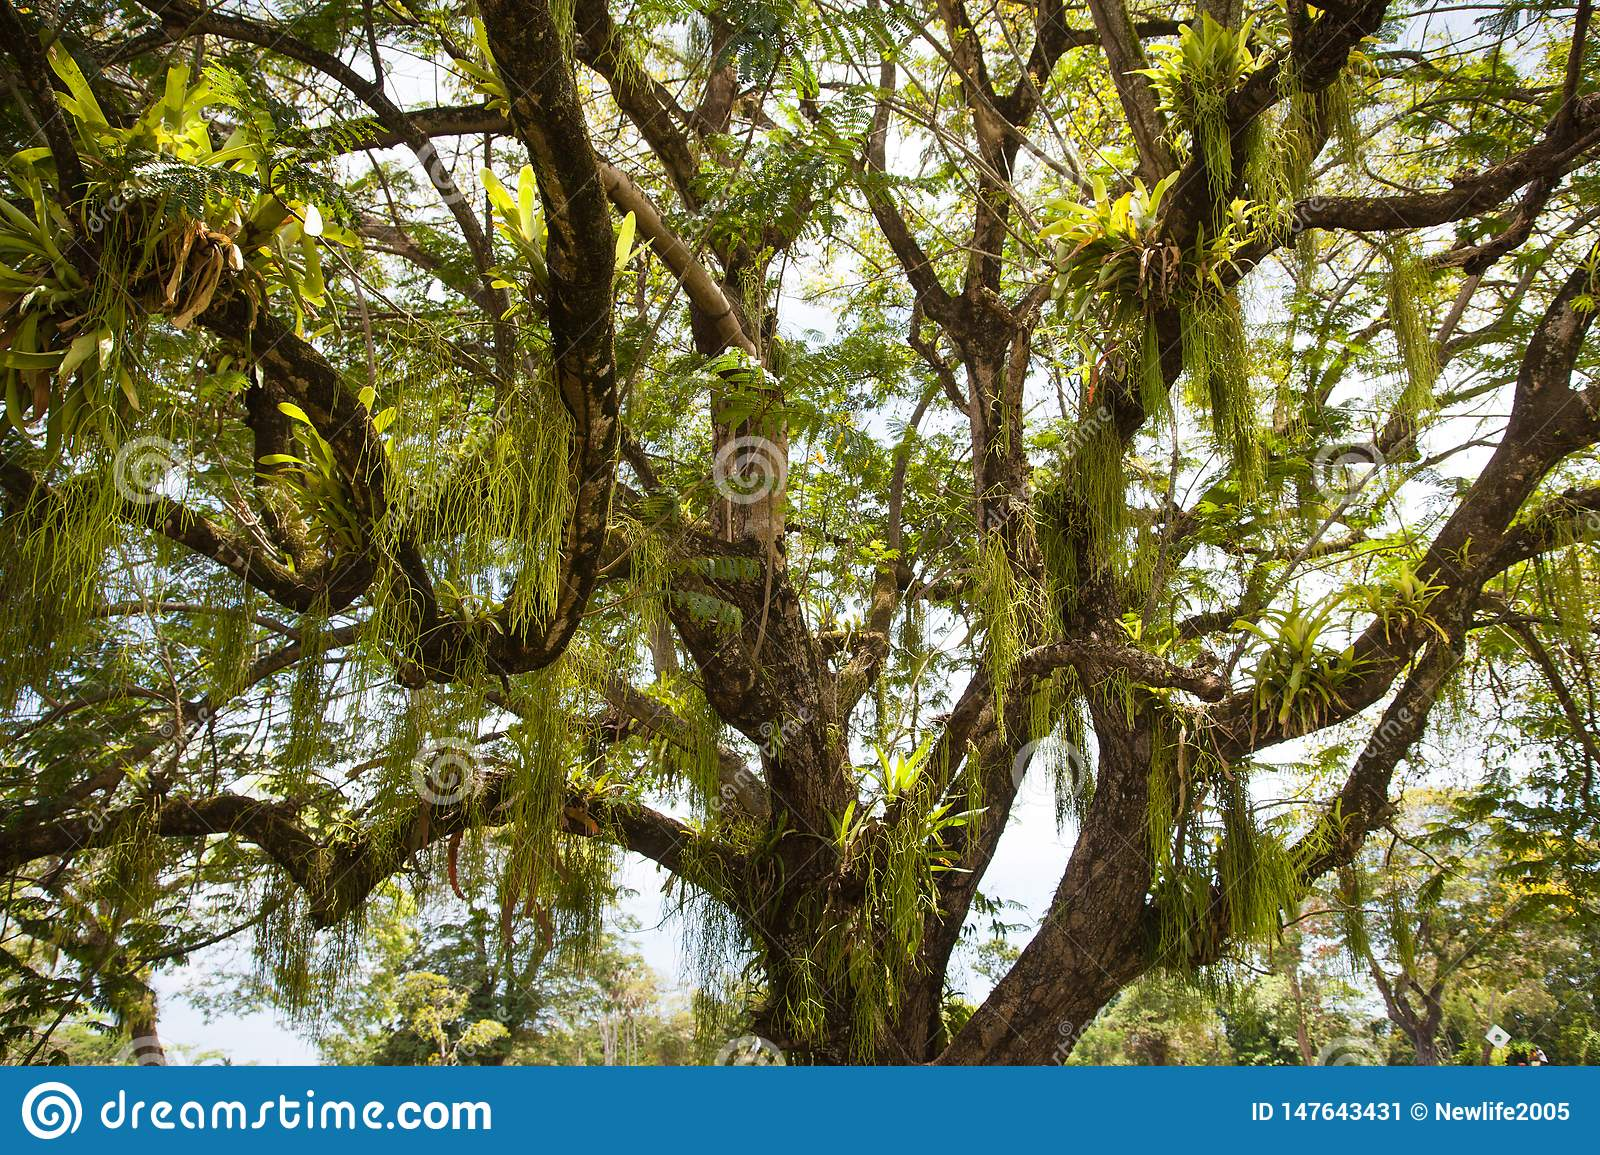 View of a beautiful tree with twining and hanging leaves of a parasitic plant against the blue sky